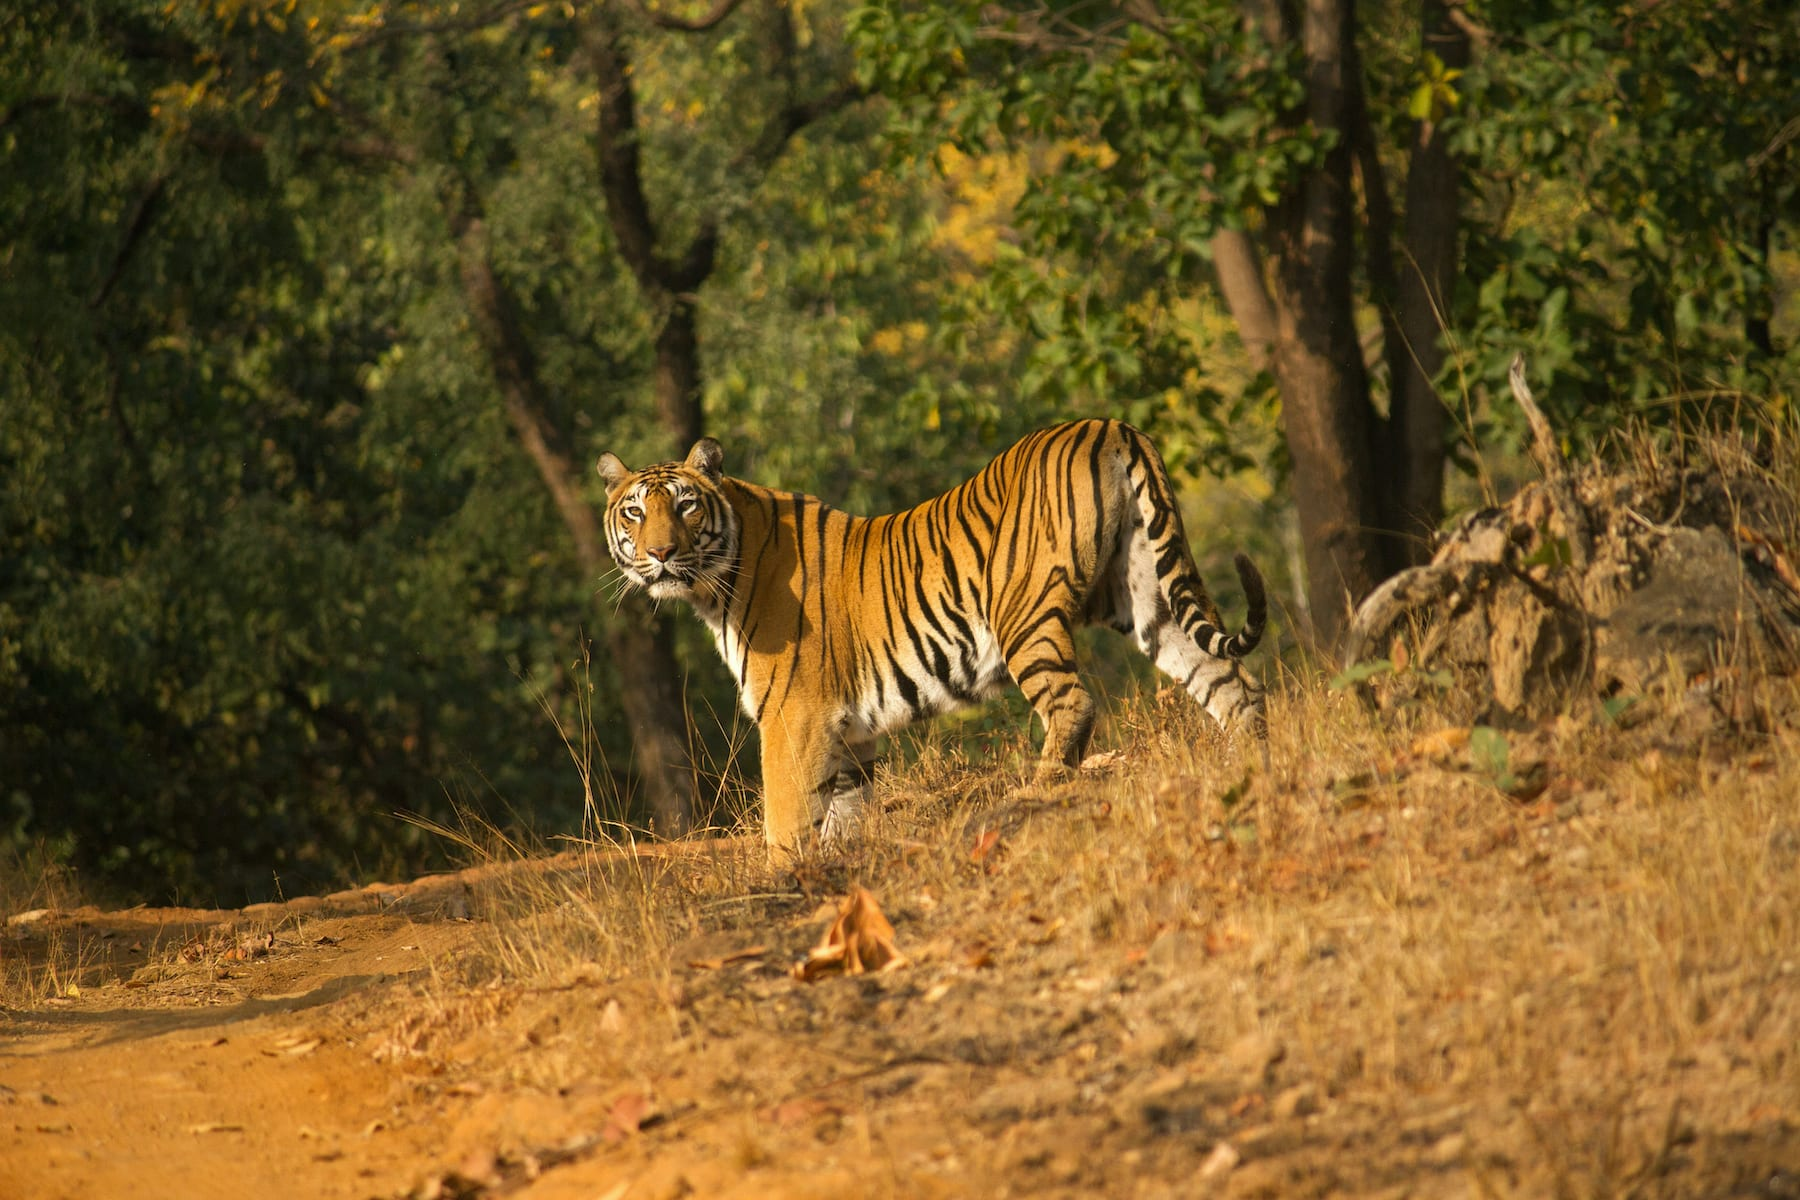 Though Satpura has a healthy population of tigers, its hilly terrain and dense forests make spotting the feline extremely difficult.